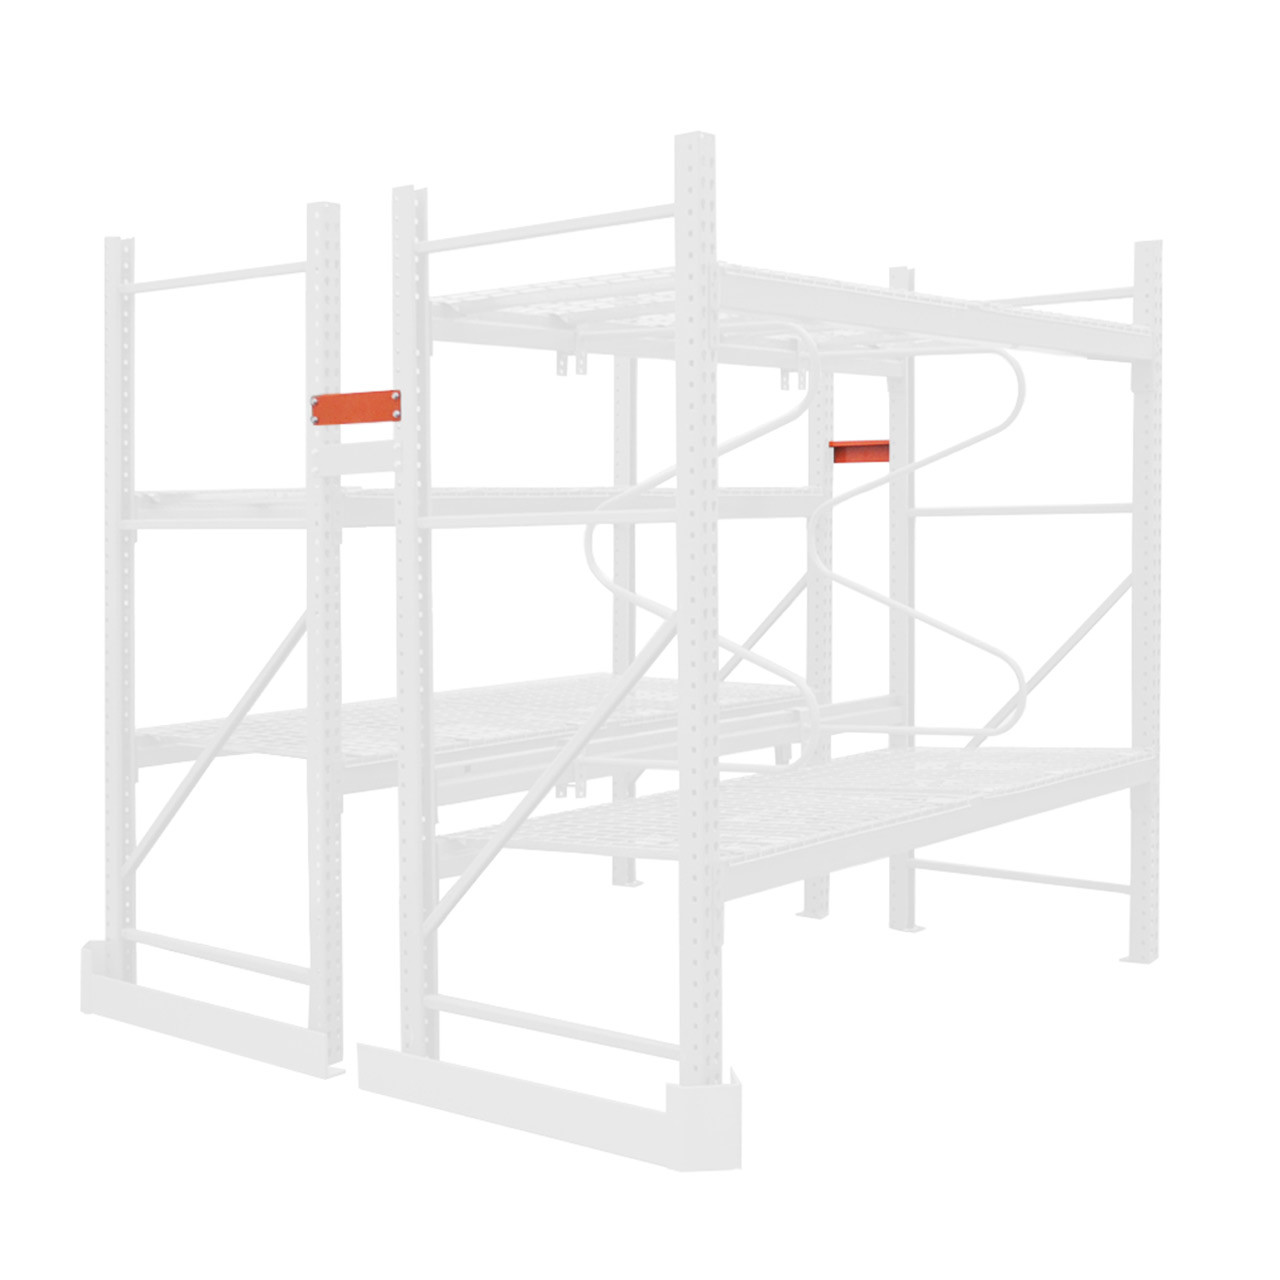 Pallet racking with row spacers